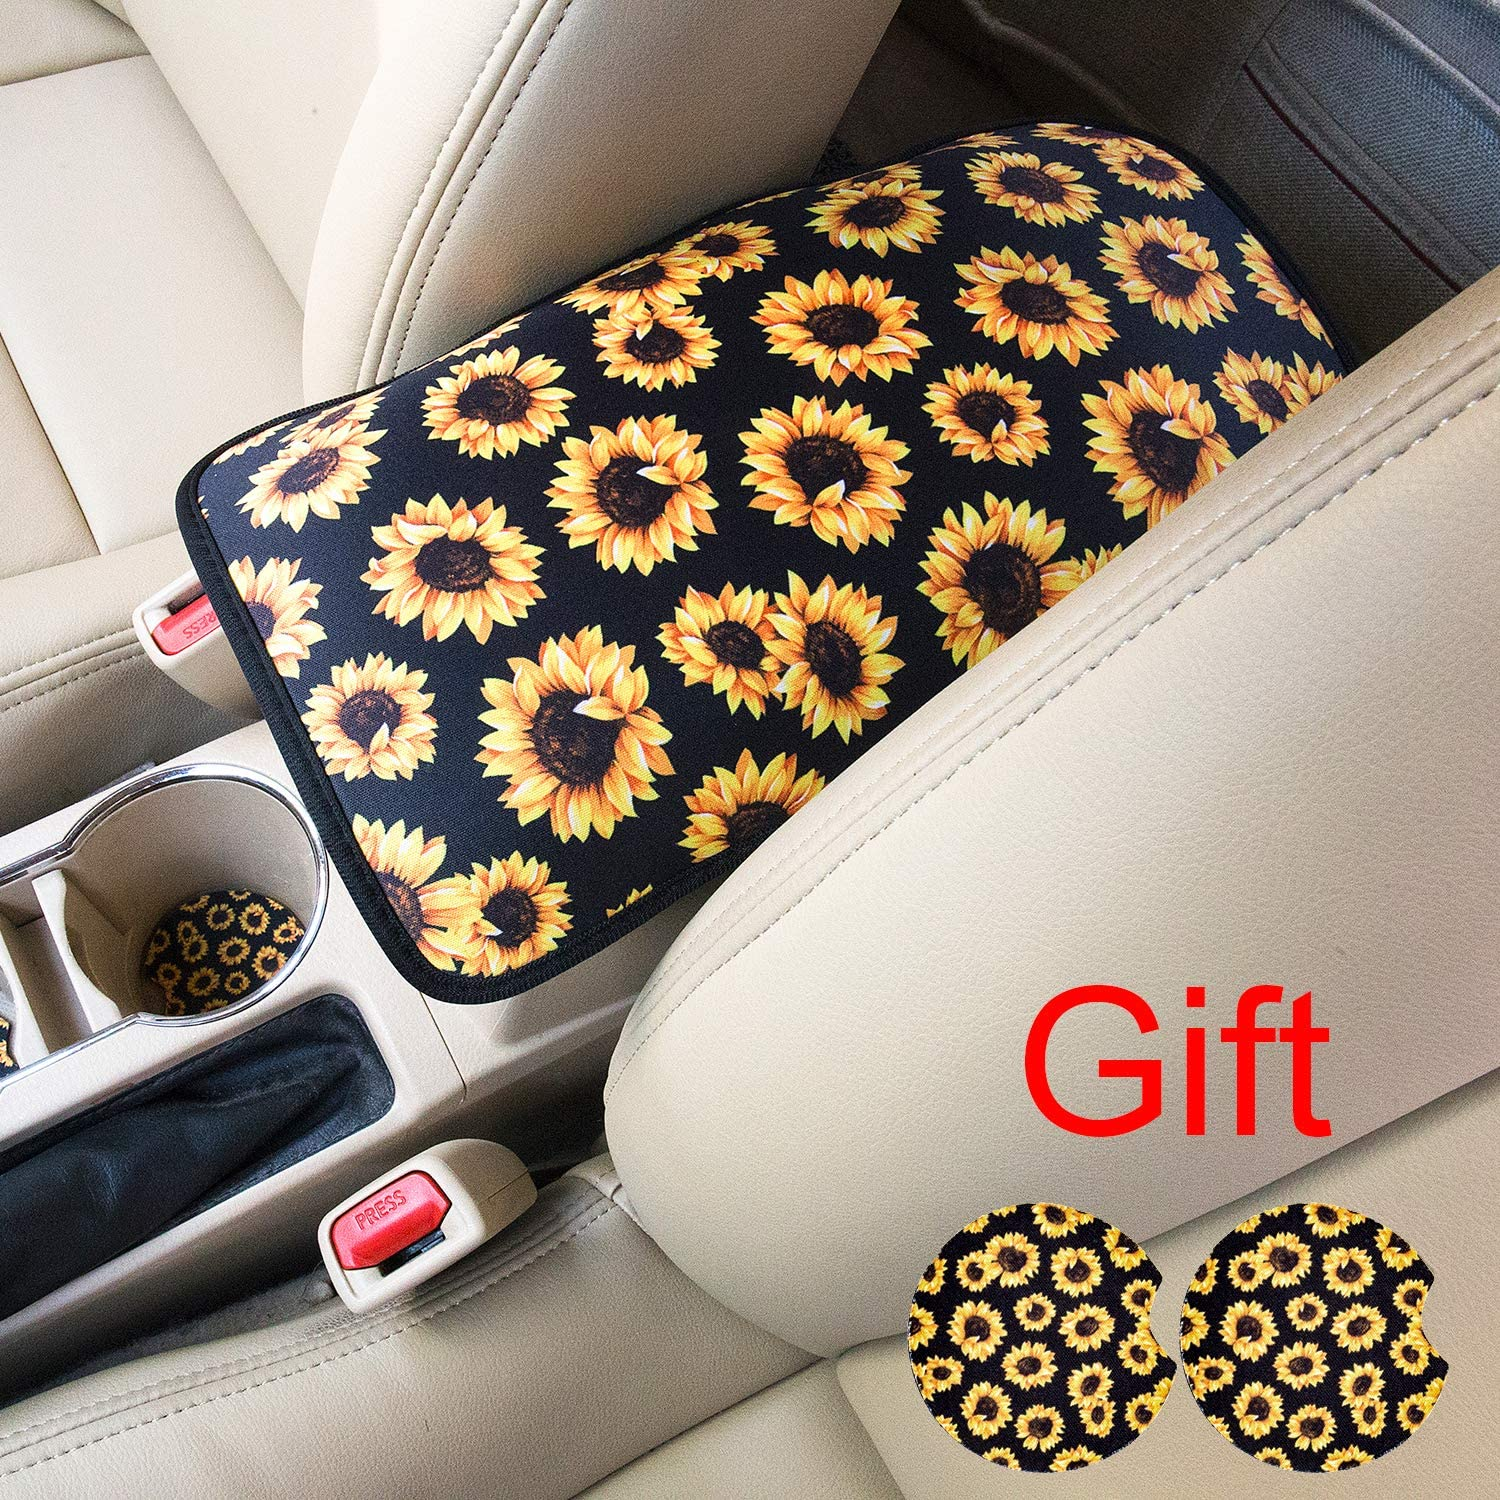 Galaxy Rose Evankin Steering Wheel Cover Cute and Handmade,PU Universal Steering Wheel Cover 15 inch Fashionable Rose Flower Car Accessories for Women,Top Girl Car Accessories